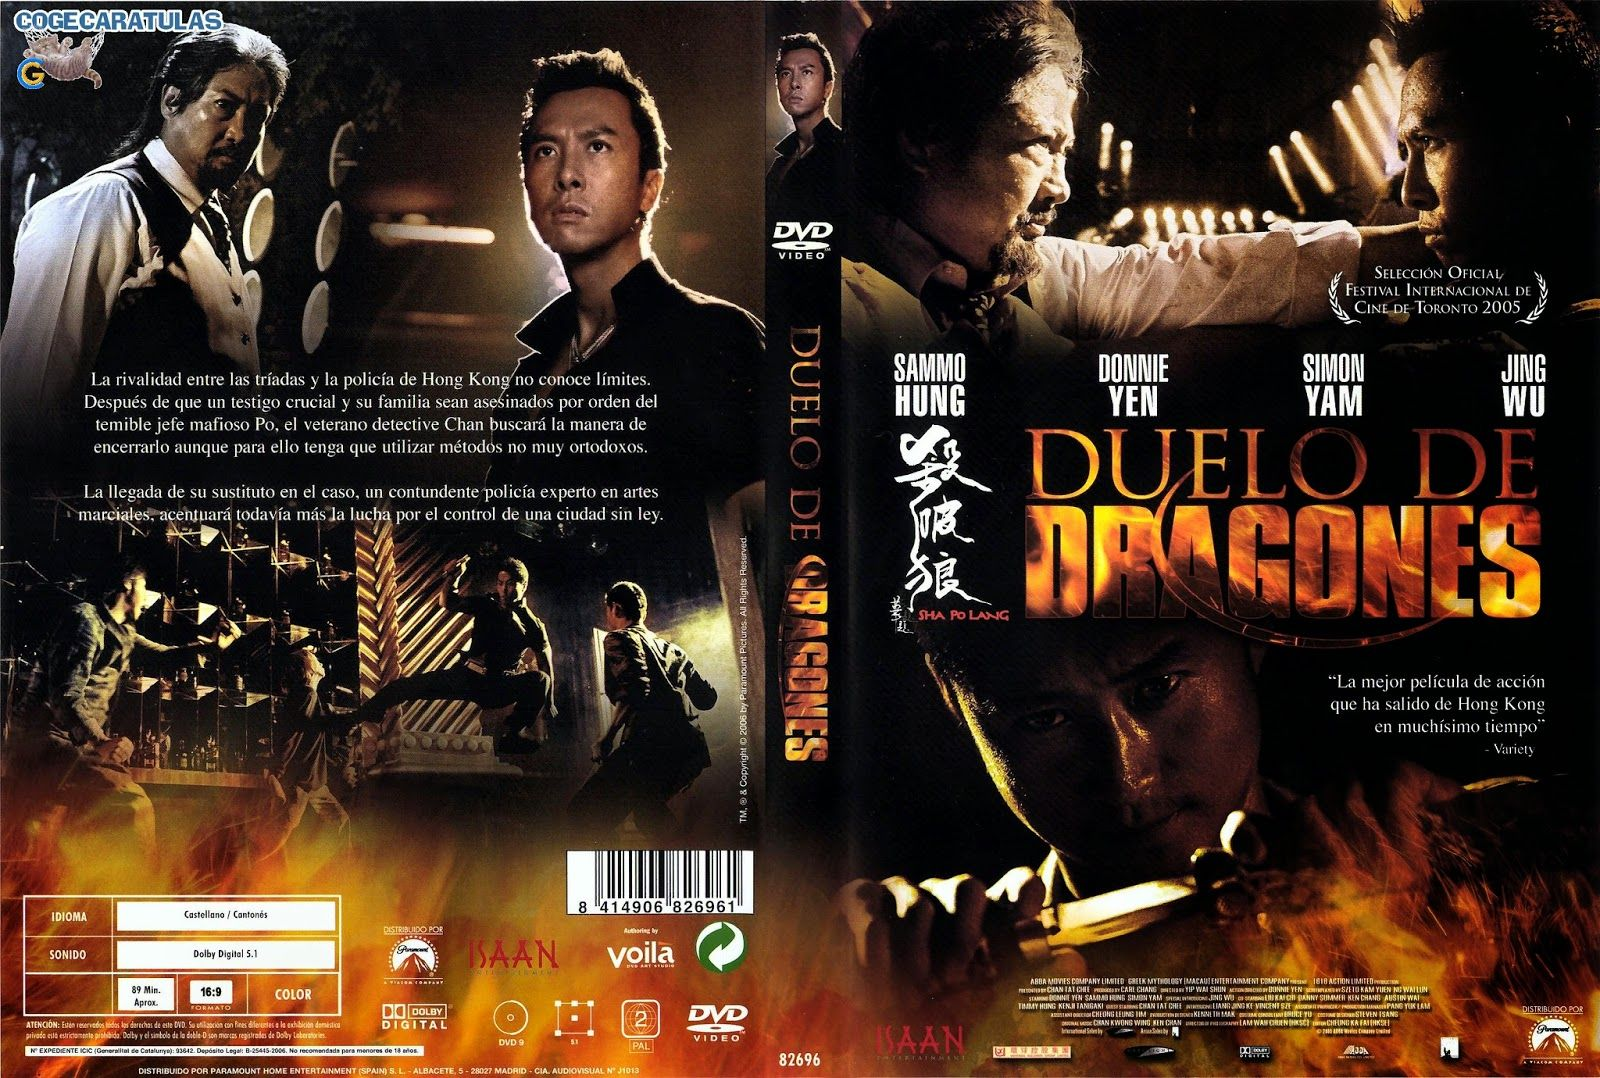 """DUELO DE DRAGONES"" (2005) ♣ Ver Online: https://www.youtube.com/watch?v=4X7rM8g-fkY"